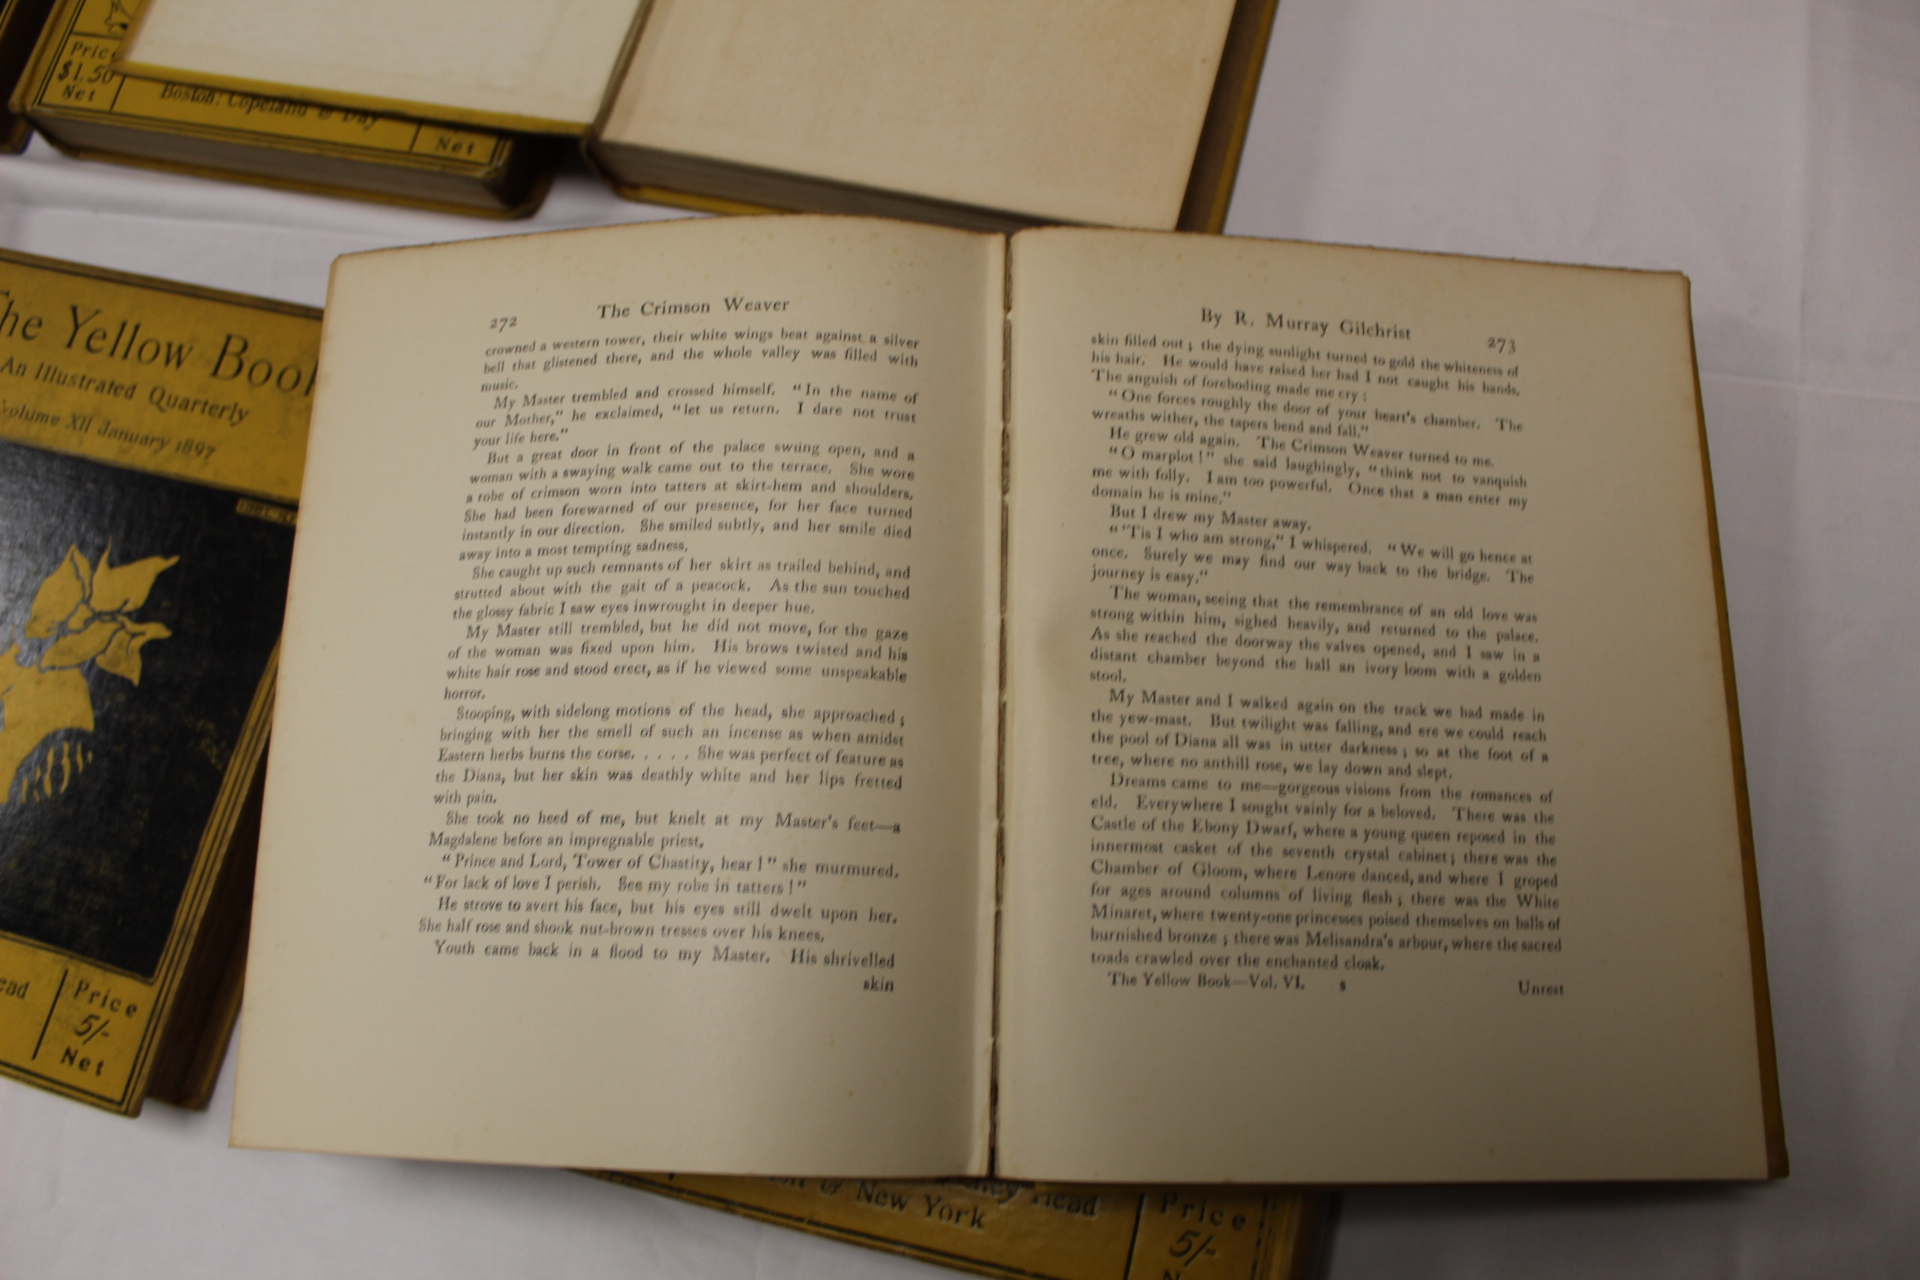 THE YELLOW BOOK.An Illustrated Quarterly. A set of 13 vols., many fine illus. Small quarto. - Image 35 of 45